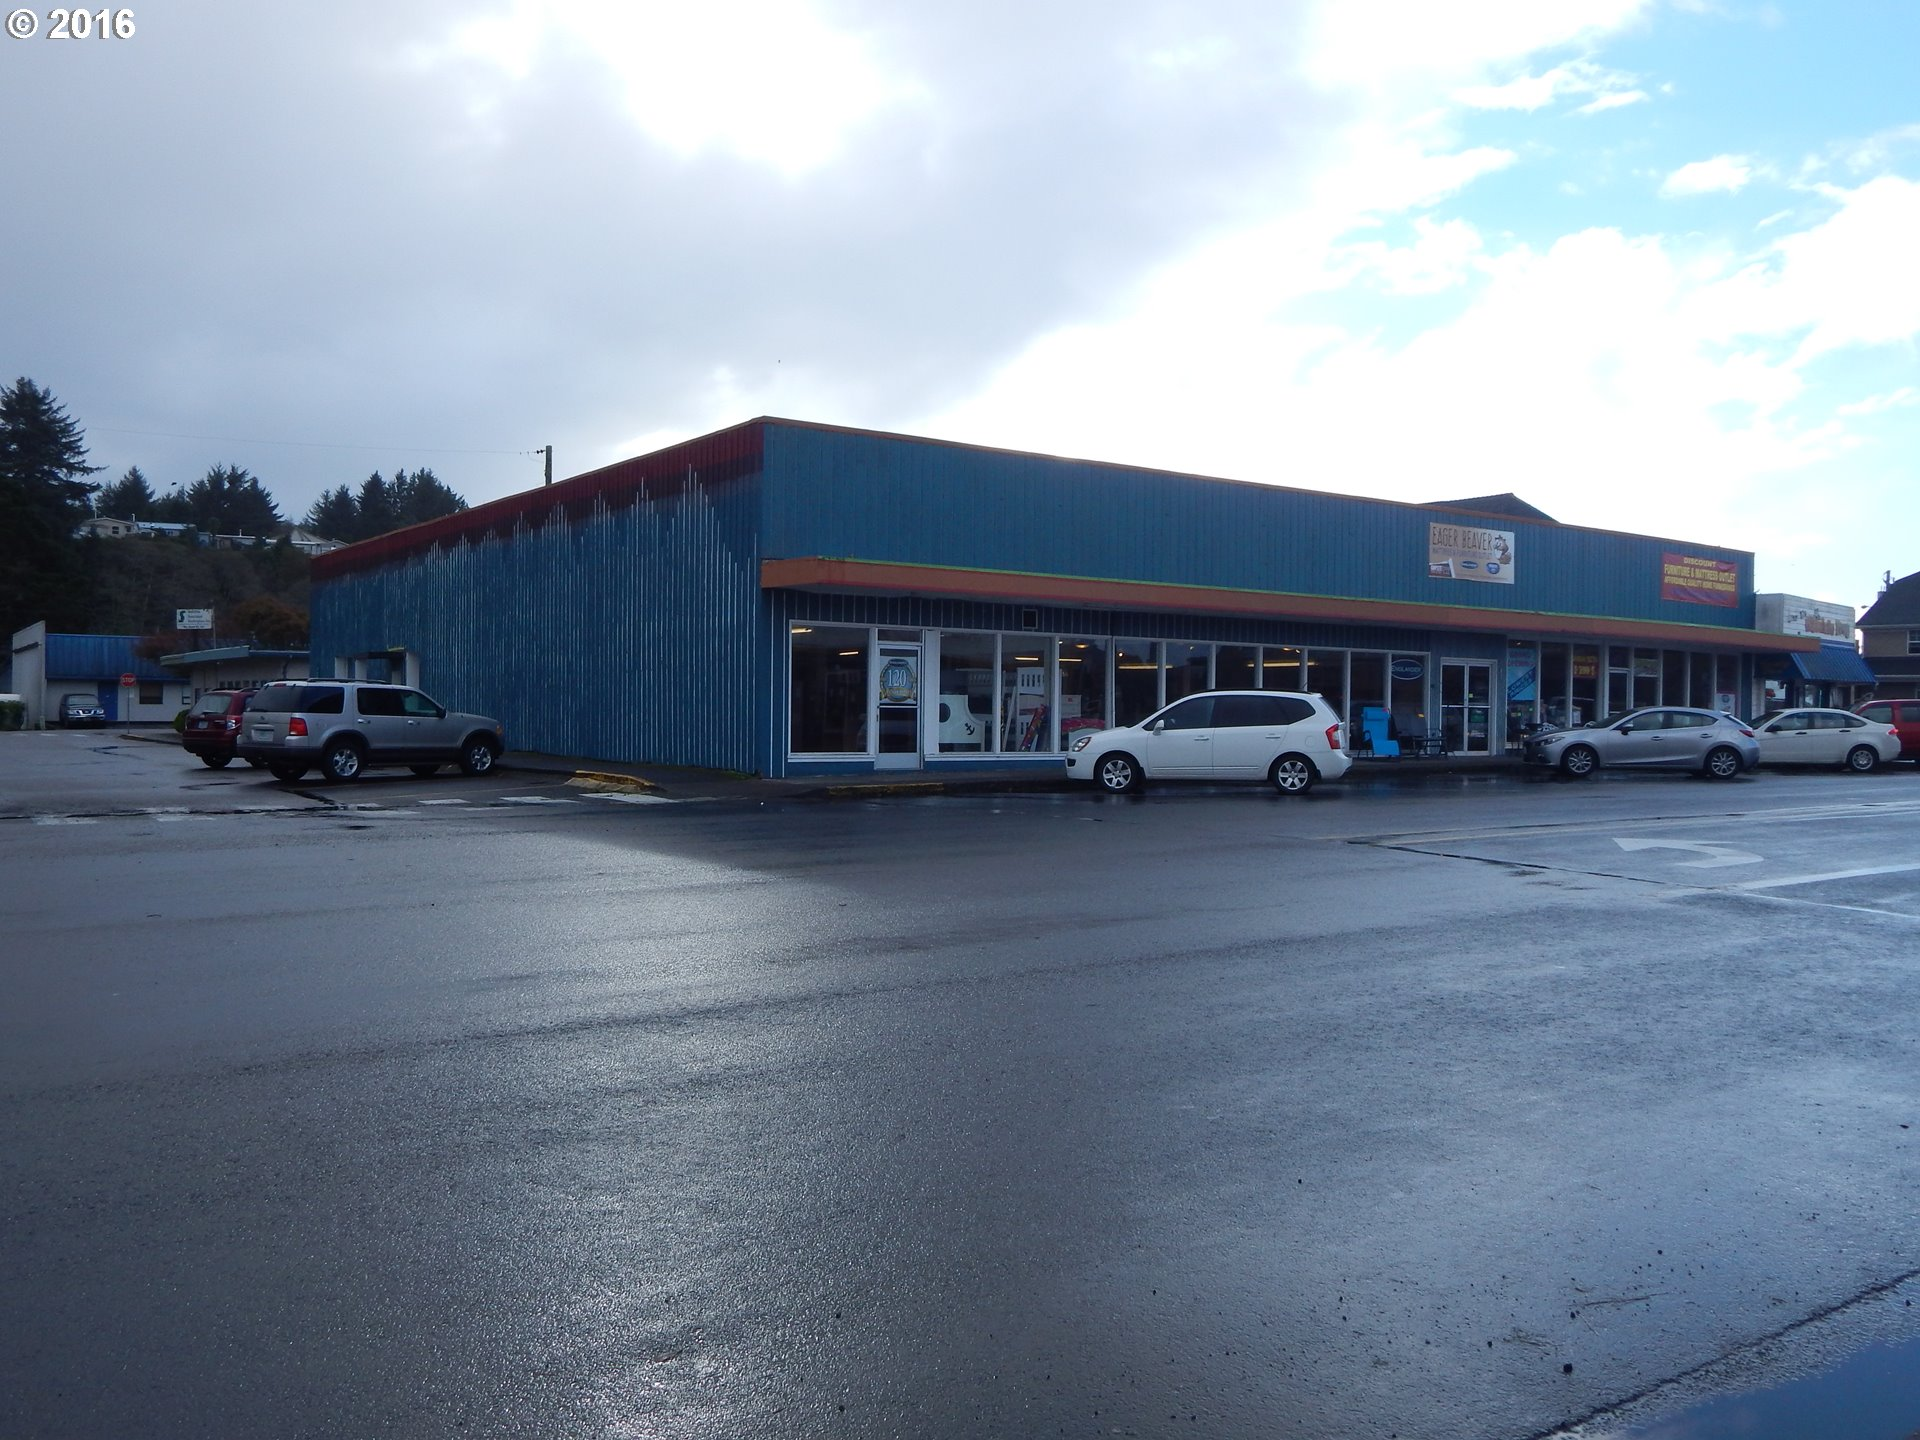 545 Nw Hemlock St, Waldport, OR 97394